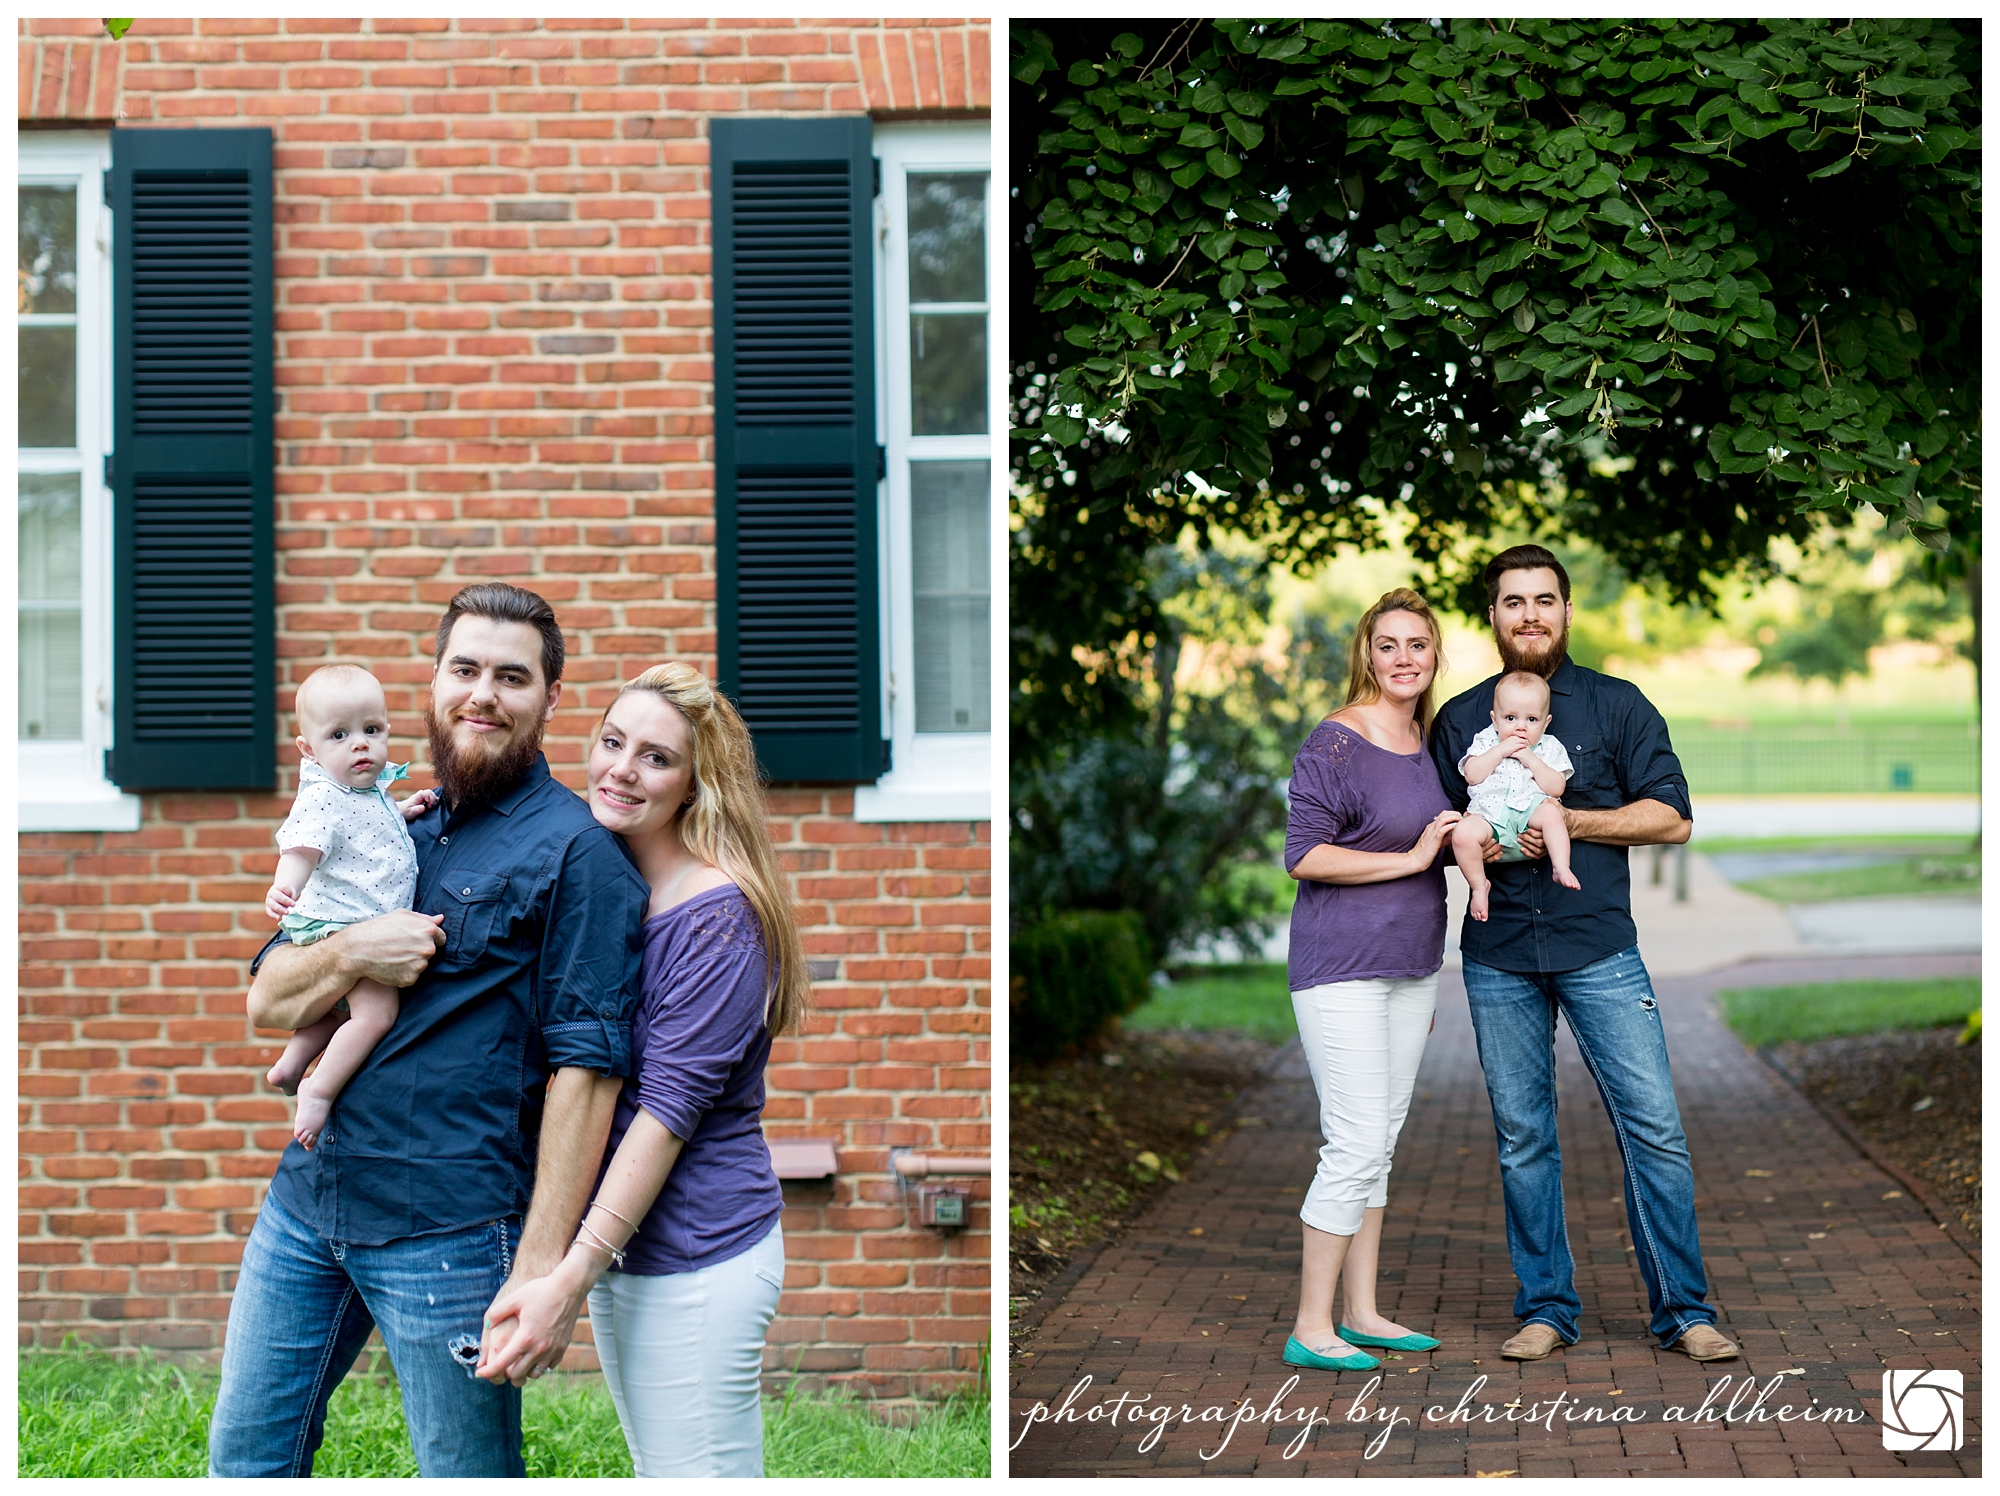 Family-Photographer-St-Charles-Missouri-Elliott_9mo-96